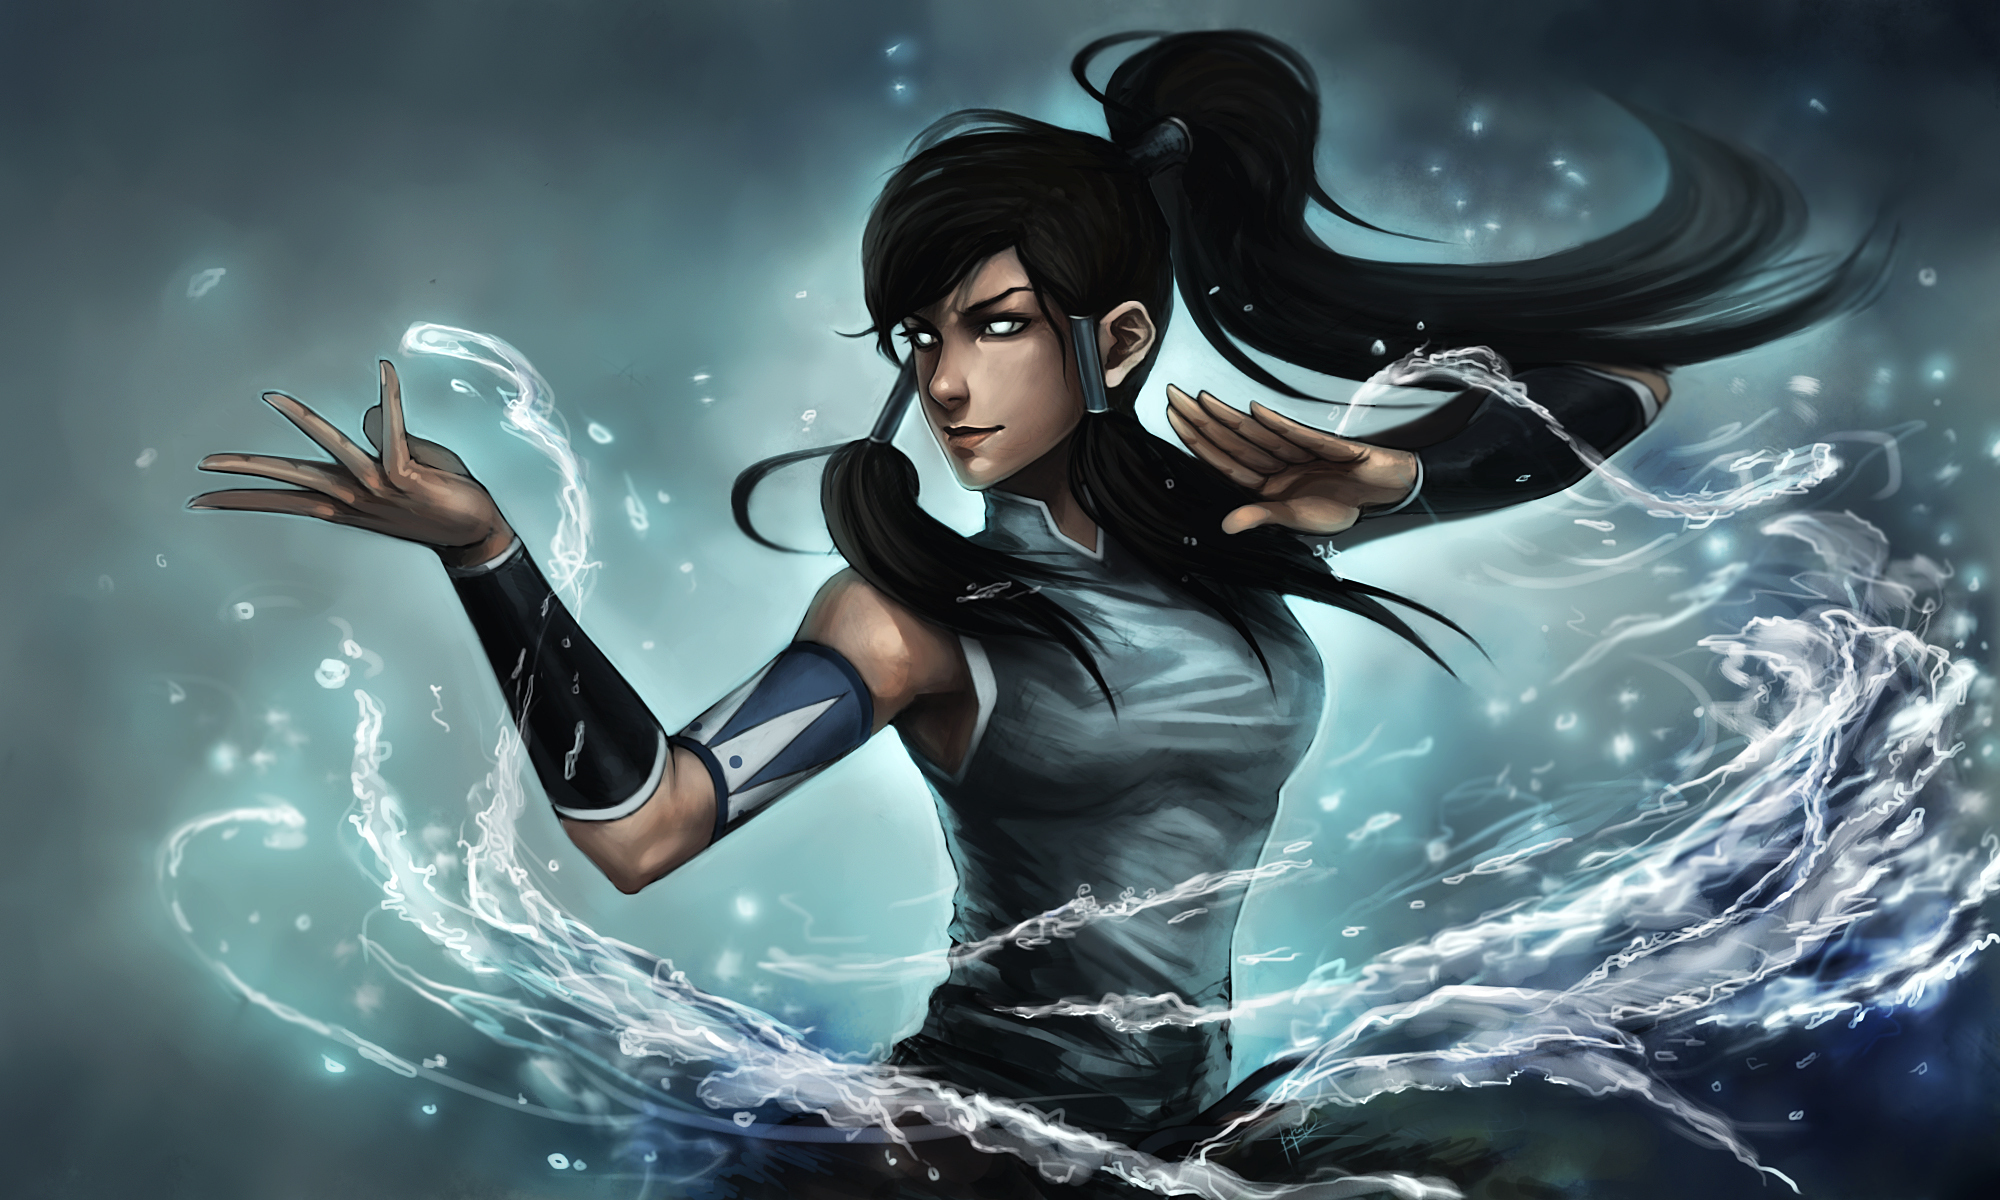 Avatar the legend of korra korra